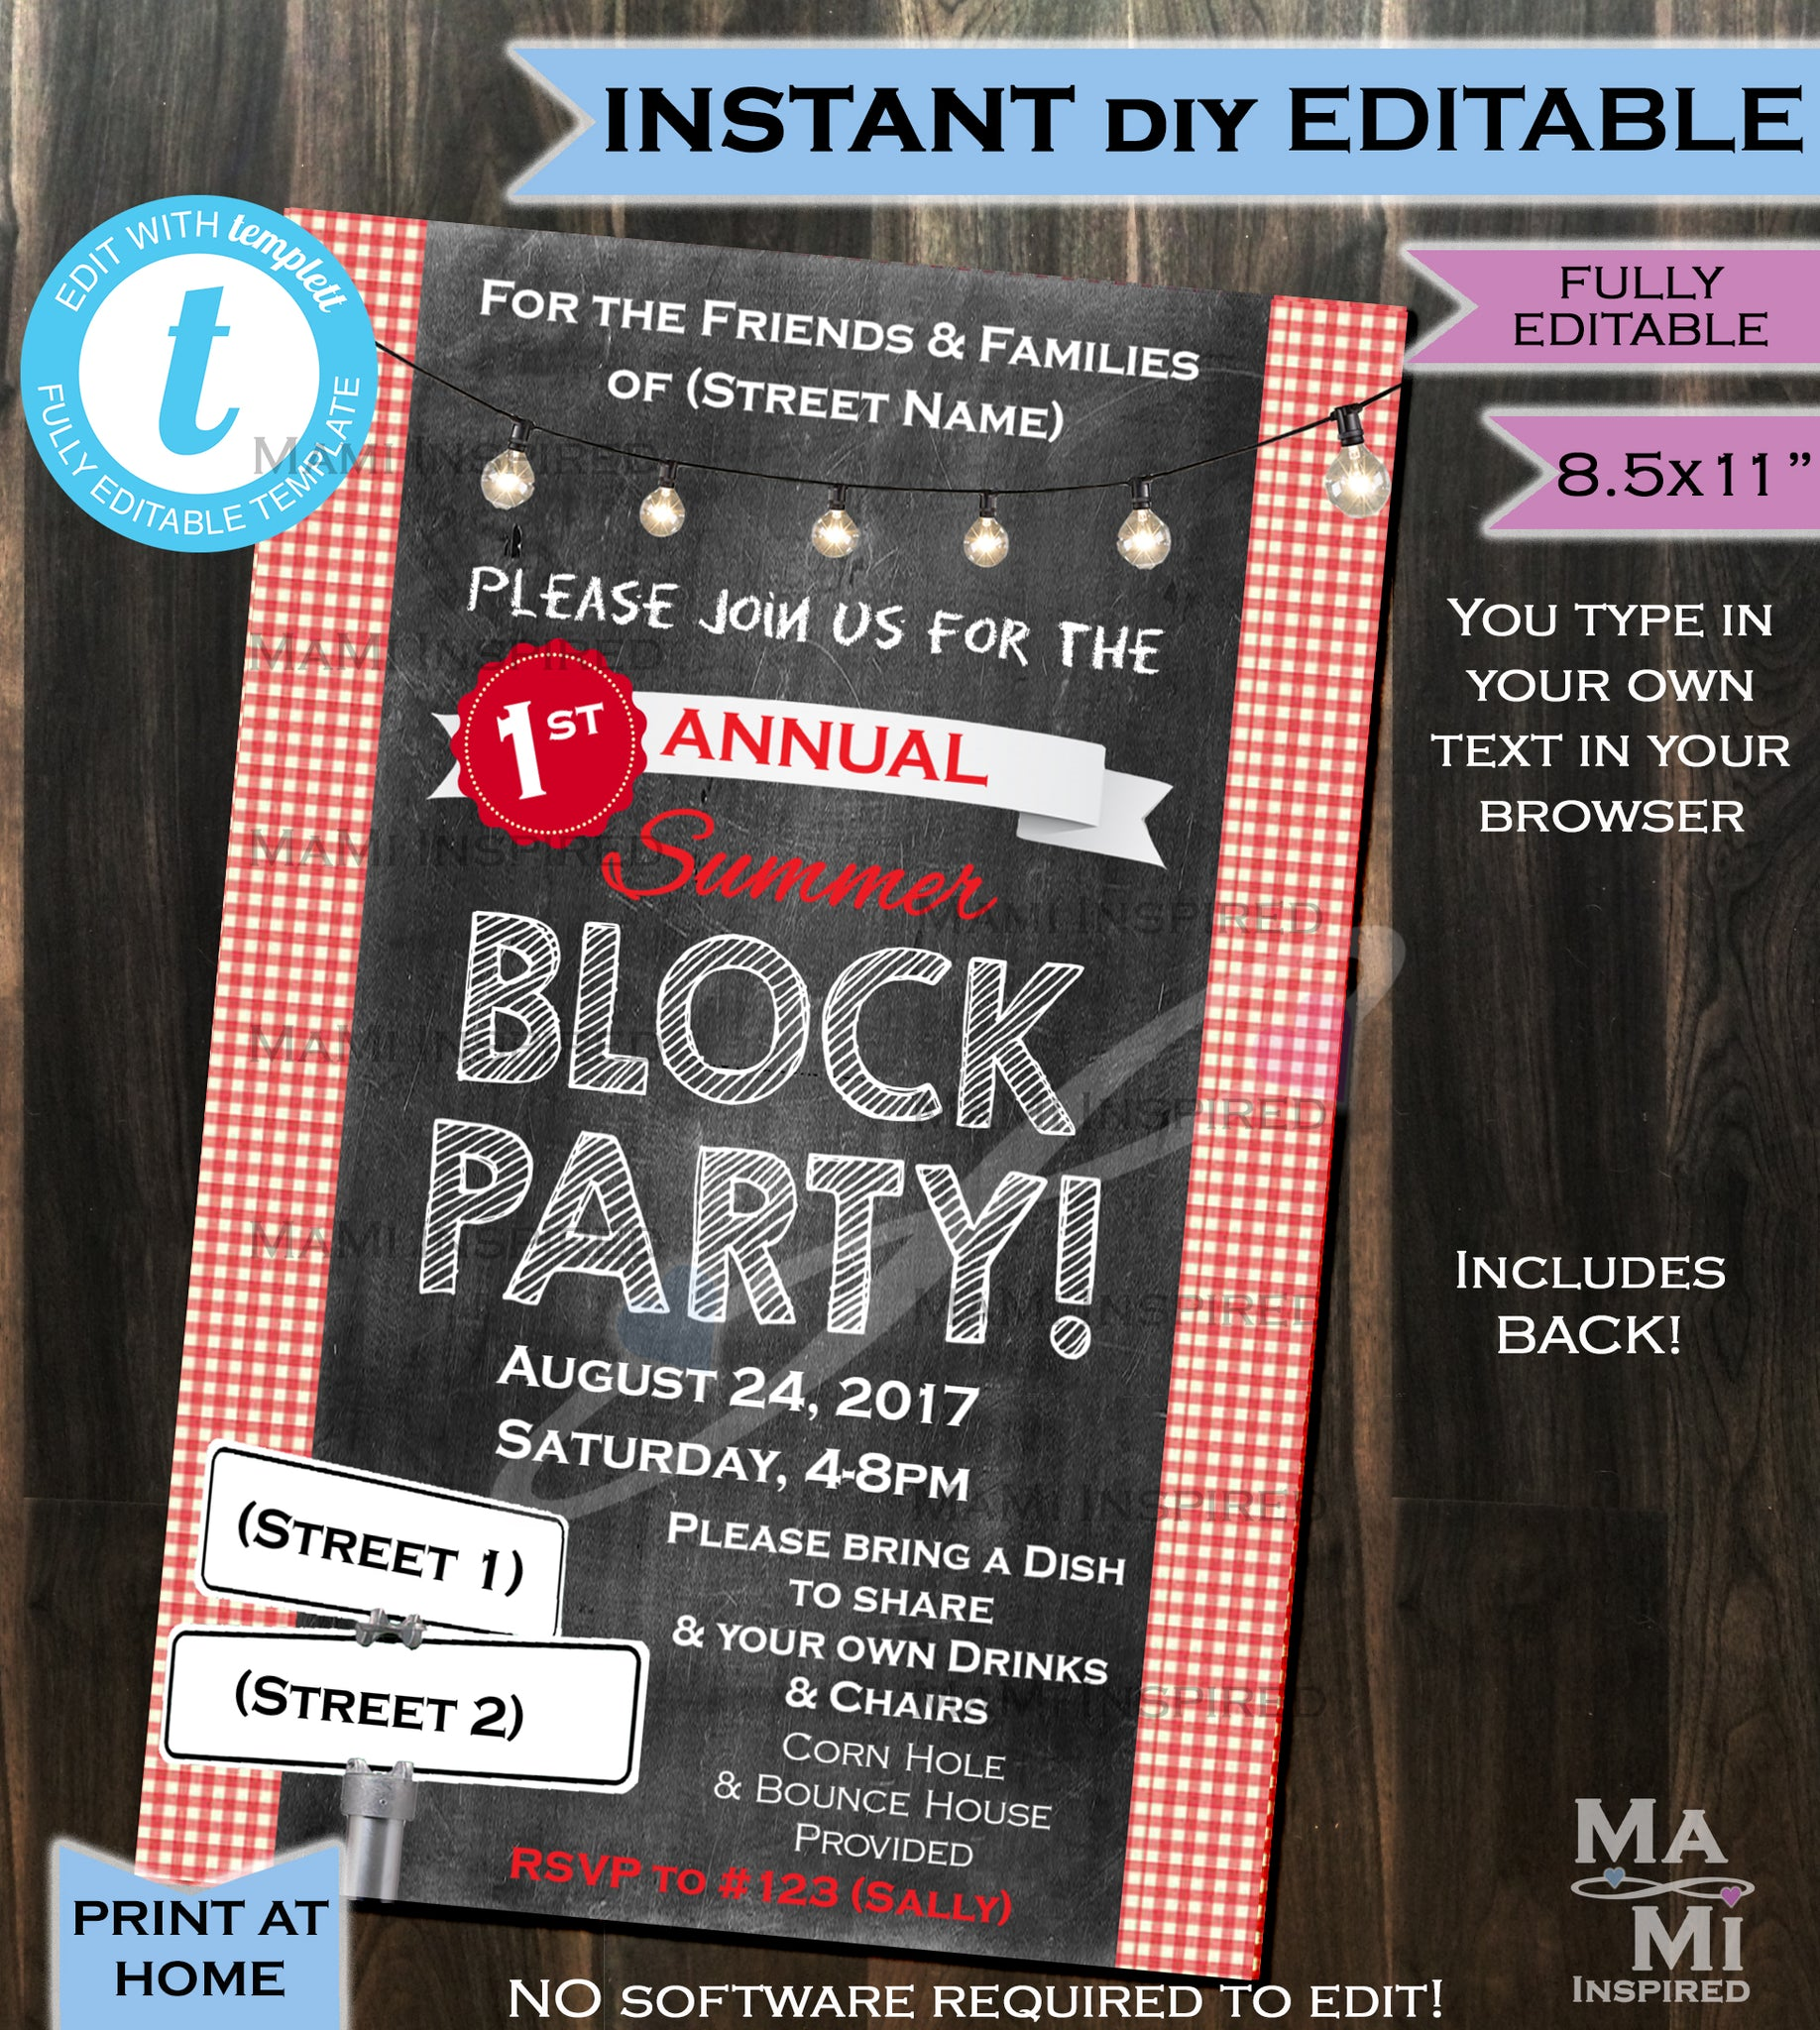 block party invitation flyer street party neighborhood invite bbq party printable personalized chalkboard instant